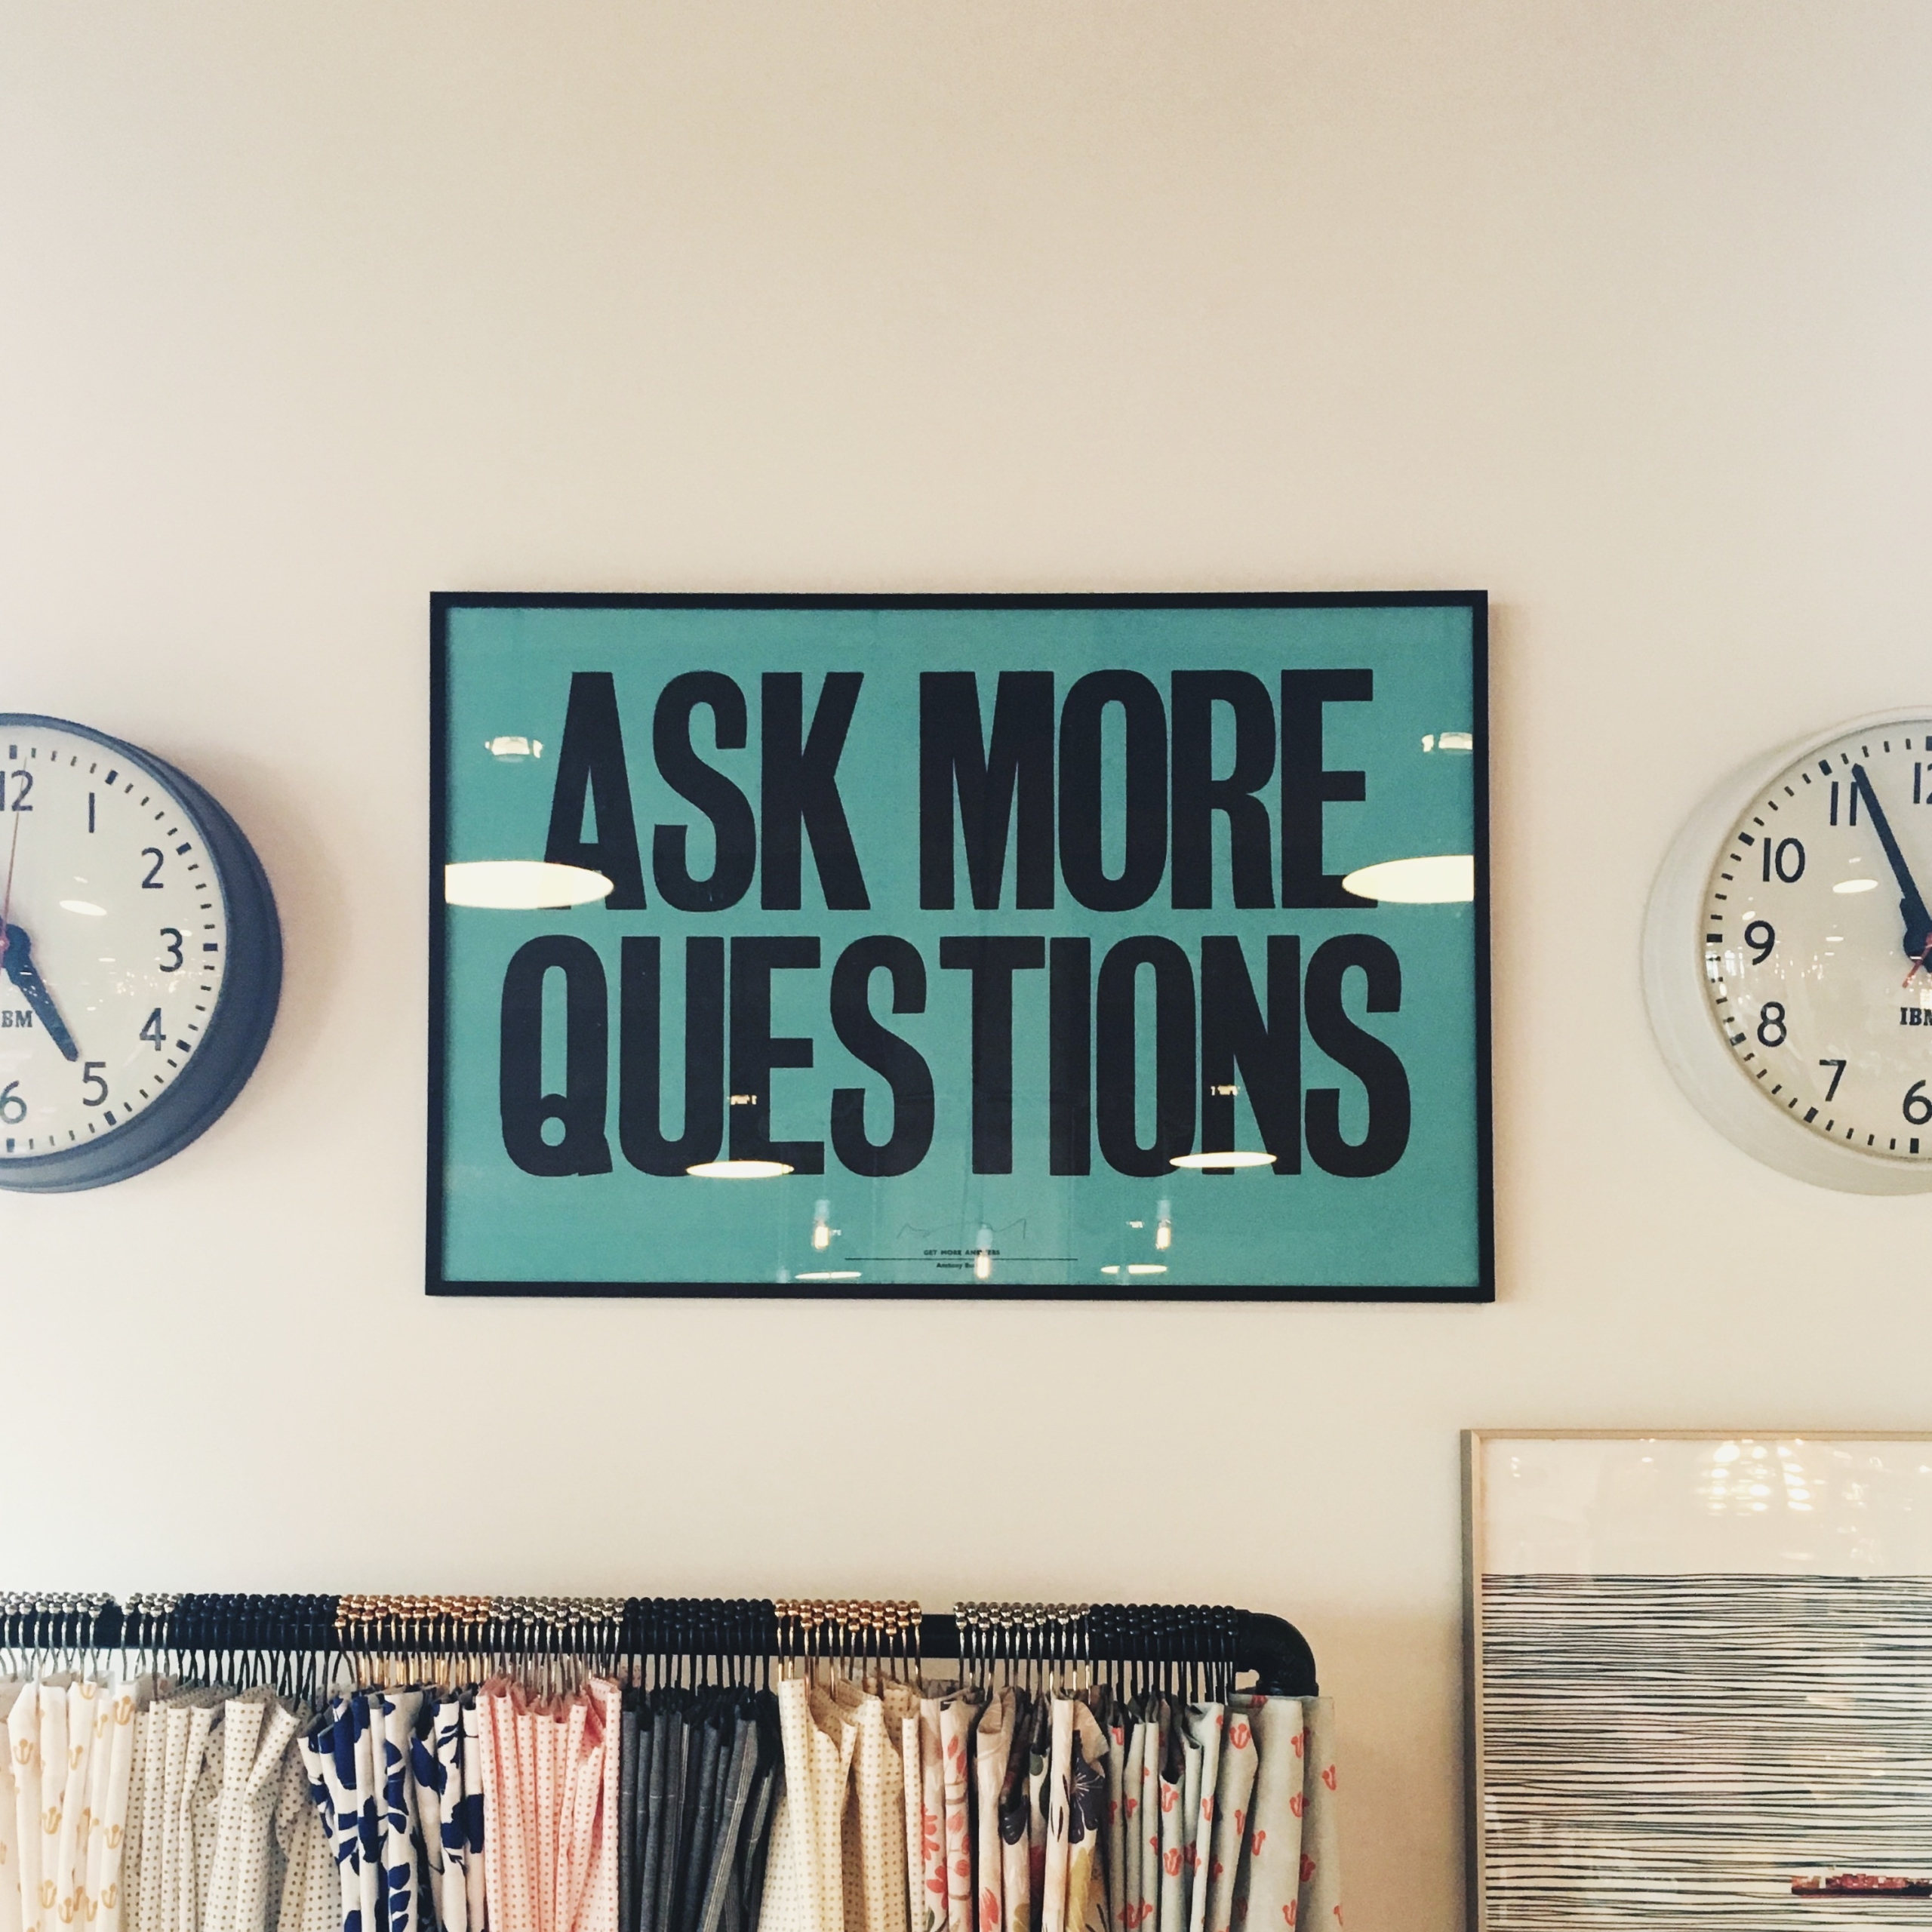 """A framed sign on a wall that reads """"Ask more questions"""""""